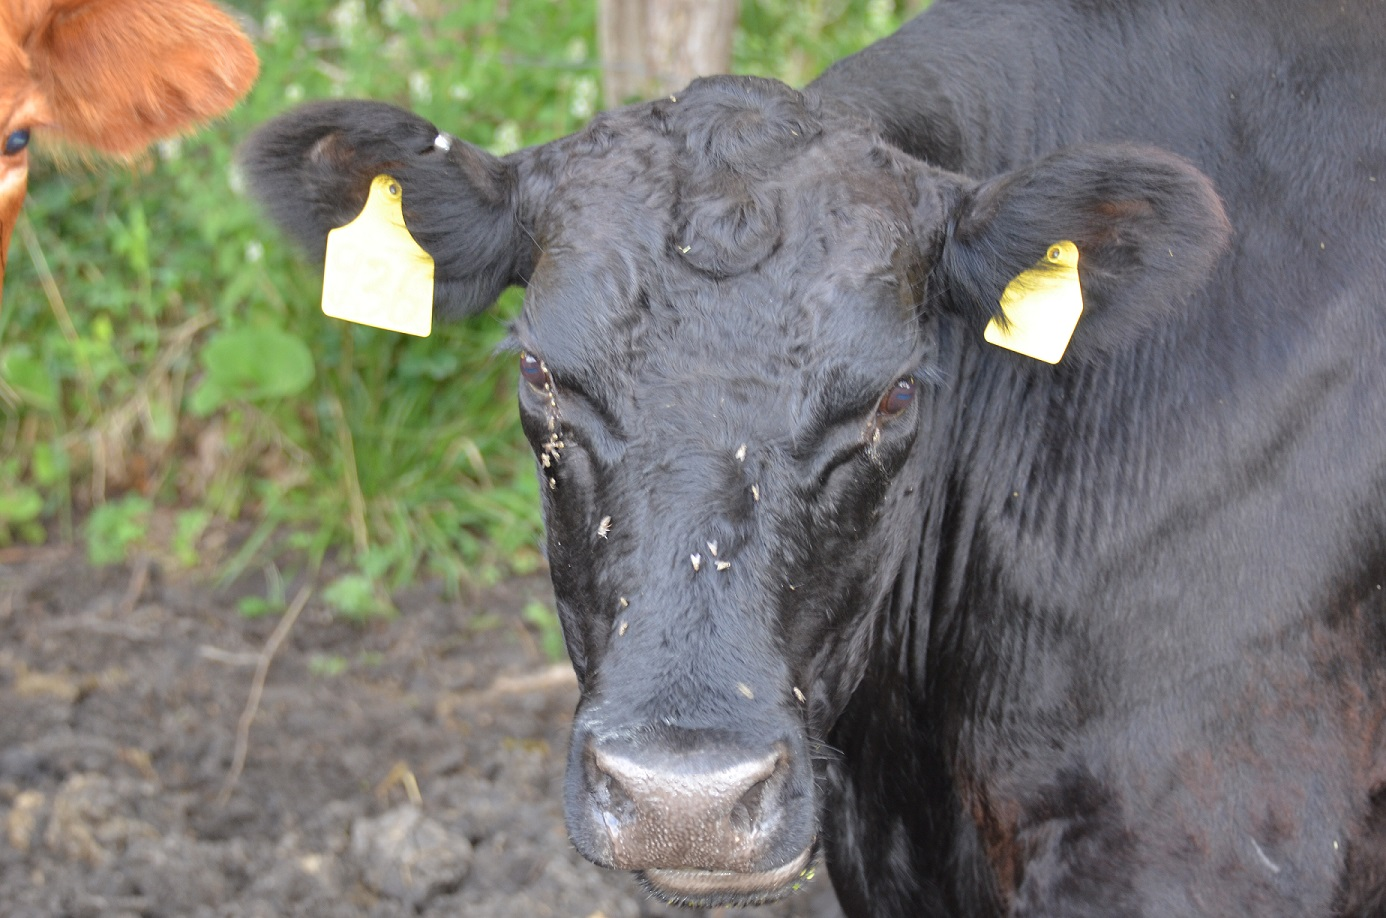 Face flies on cow